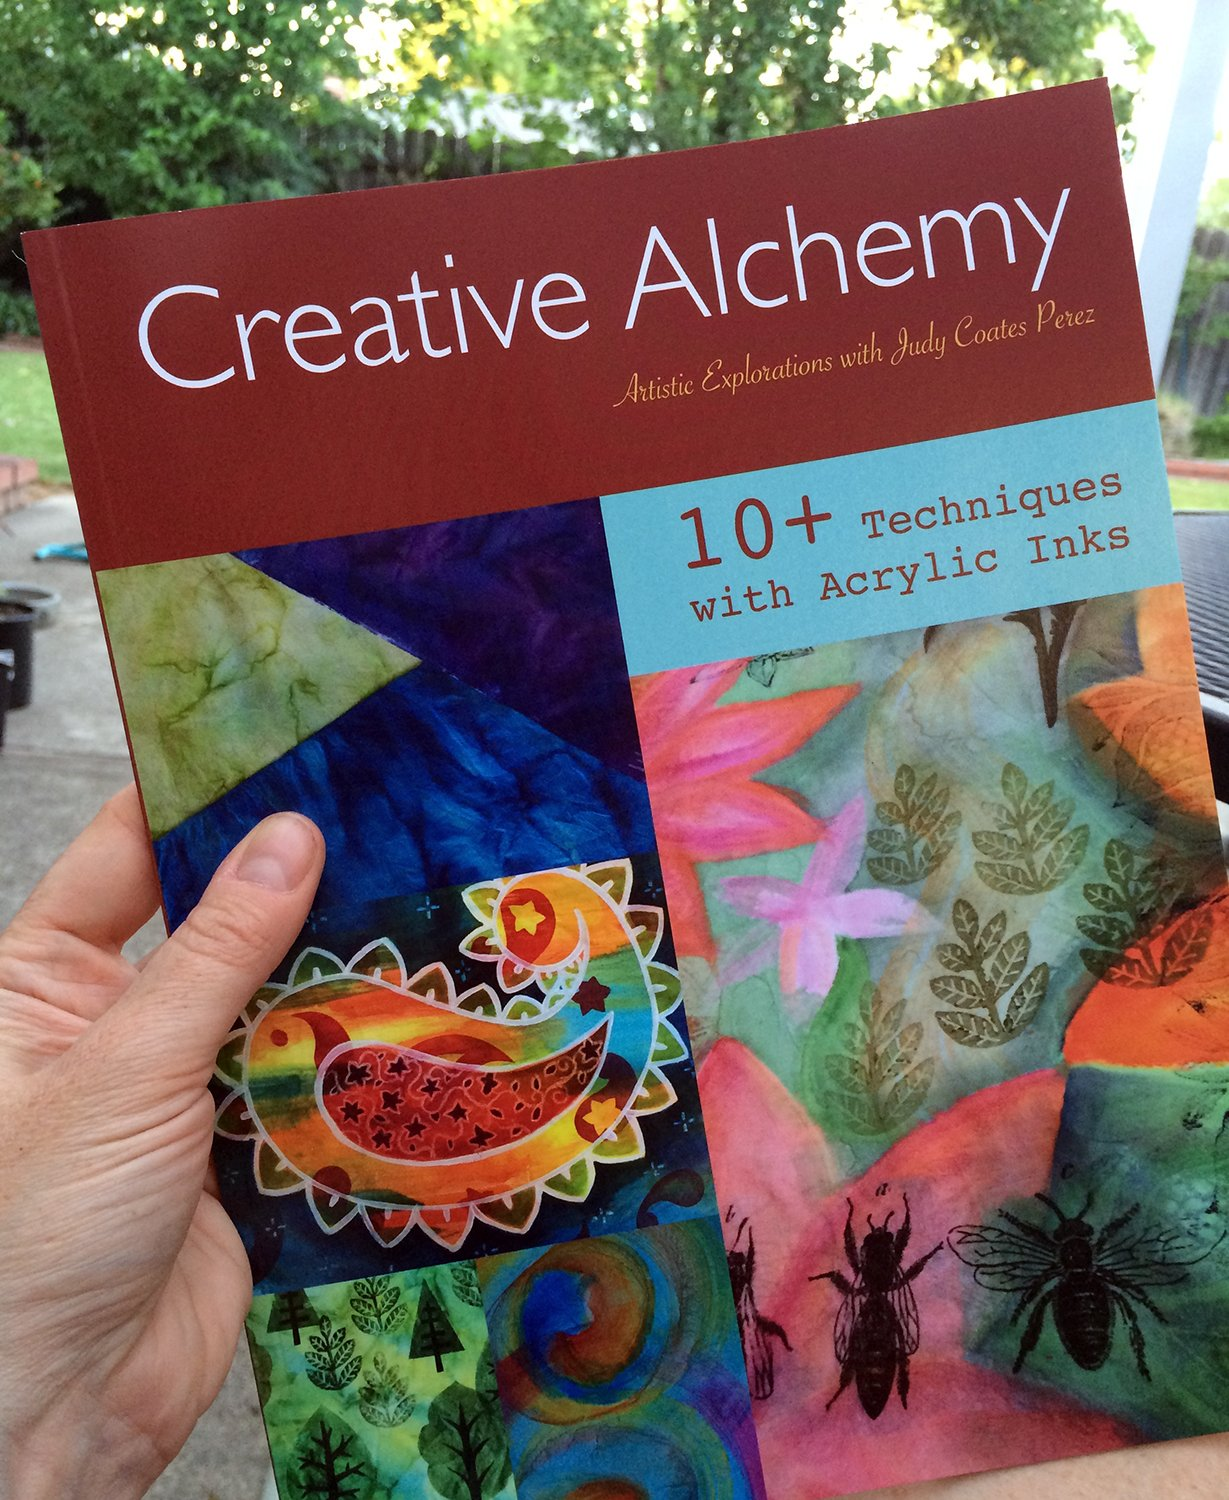 Creative Alchemy- 10+Techniques with Acrylic Inks by Judy Coates Perez